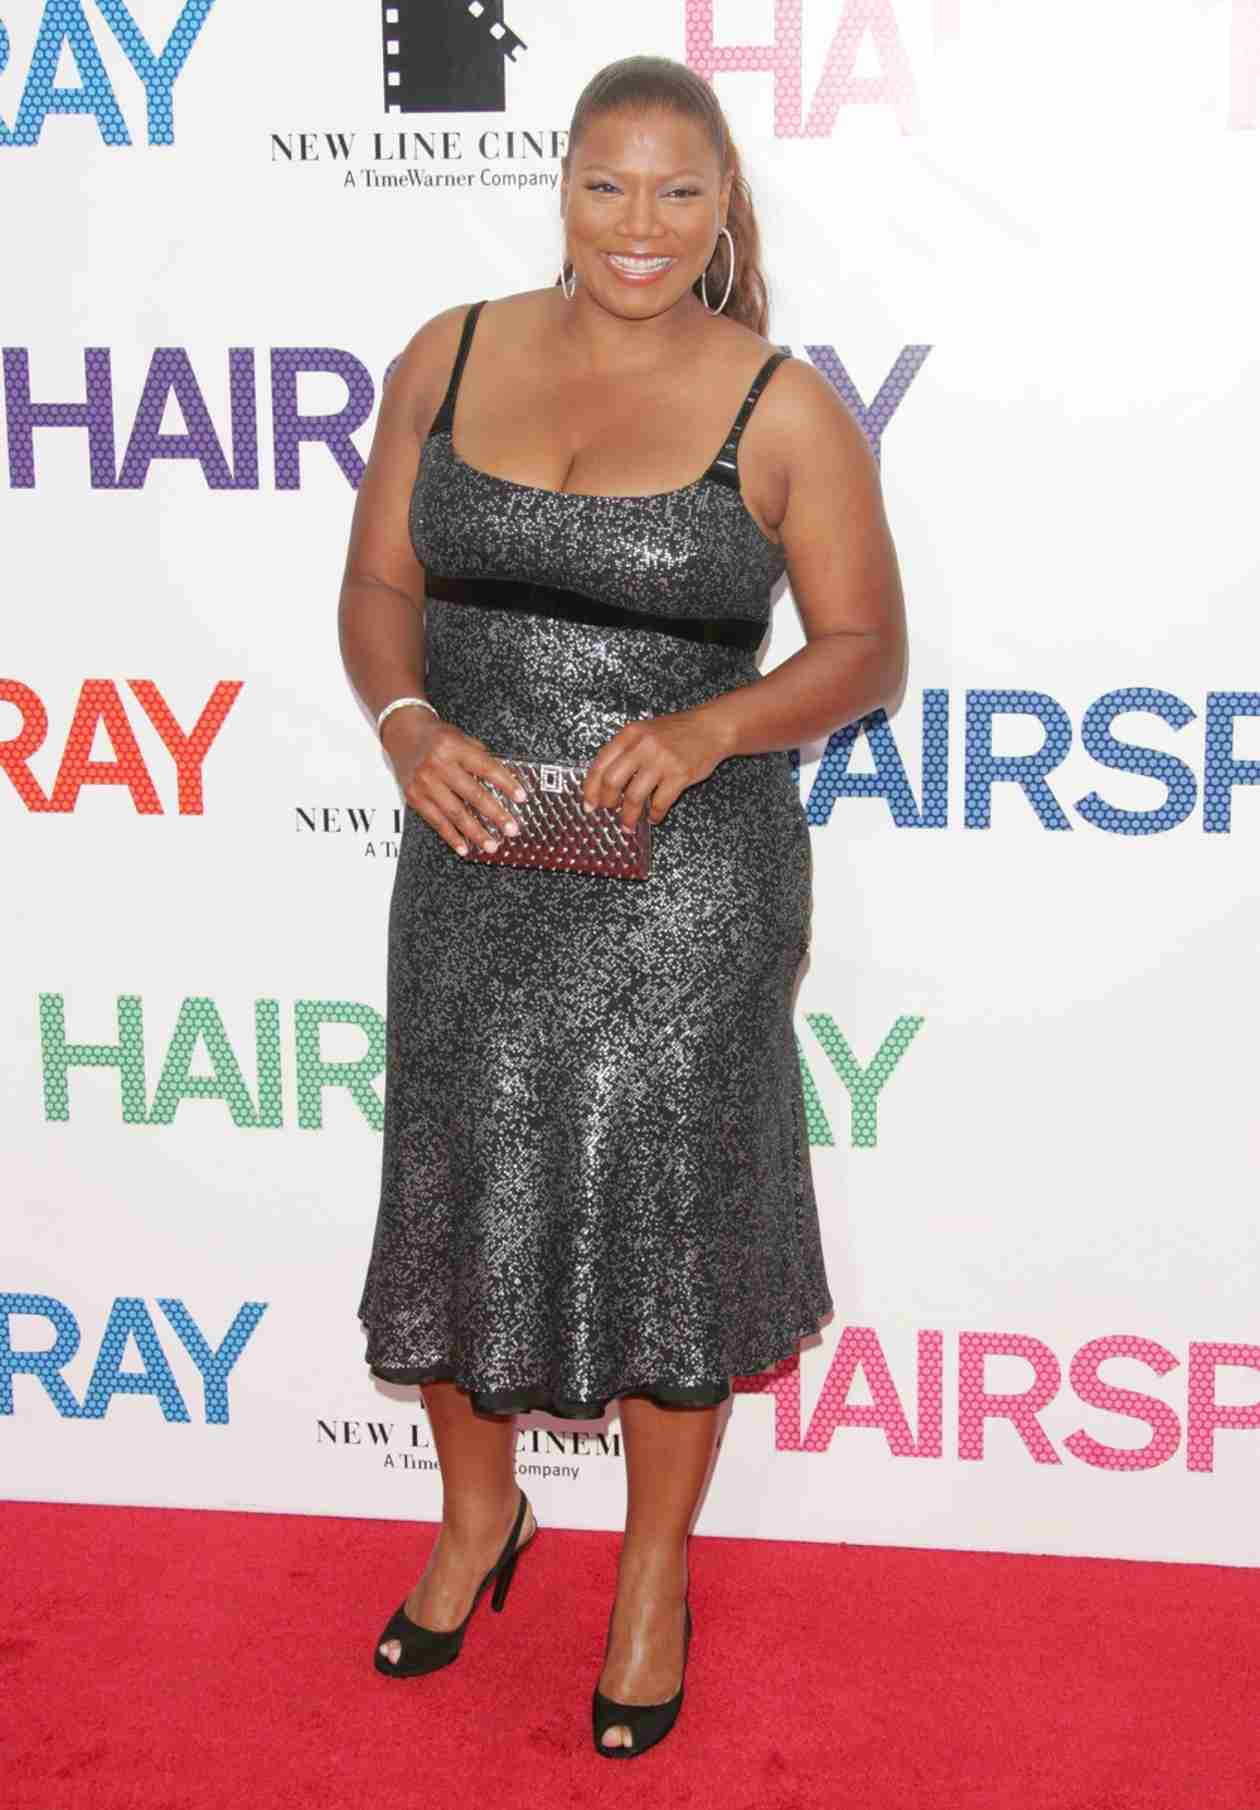 Plus-Size Celebrities in Hollywood - Plus-Size Modeling | 1260 x 1810 jpeg 91kB